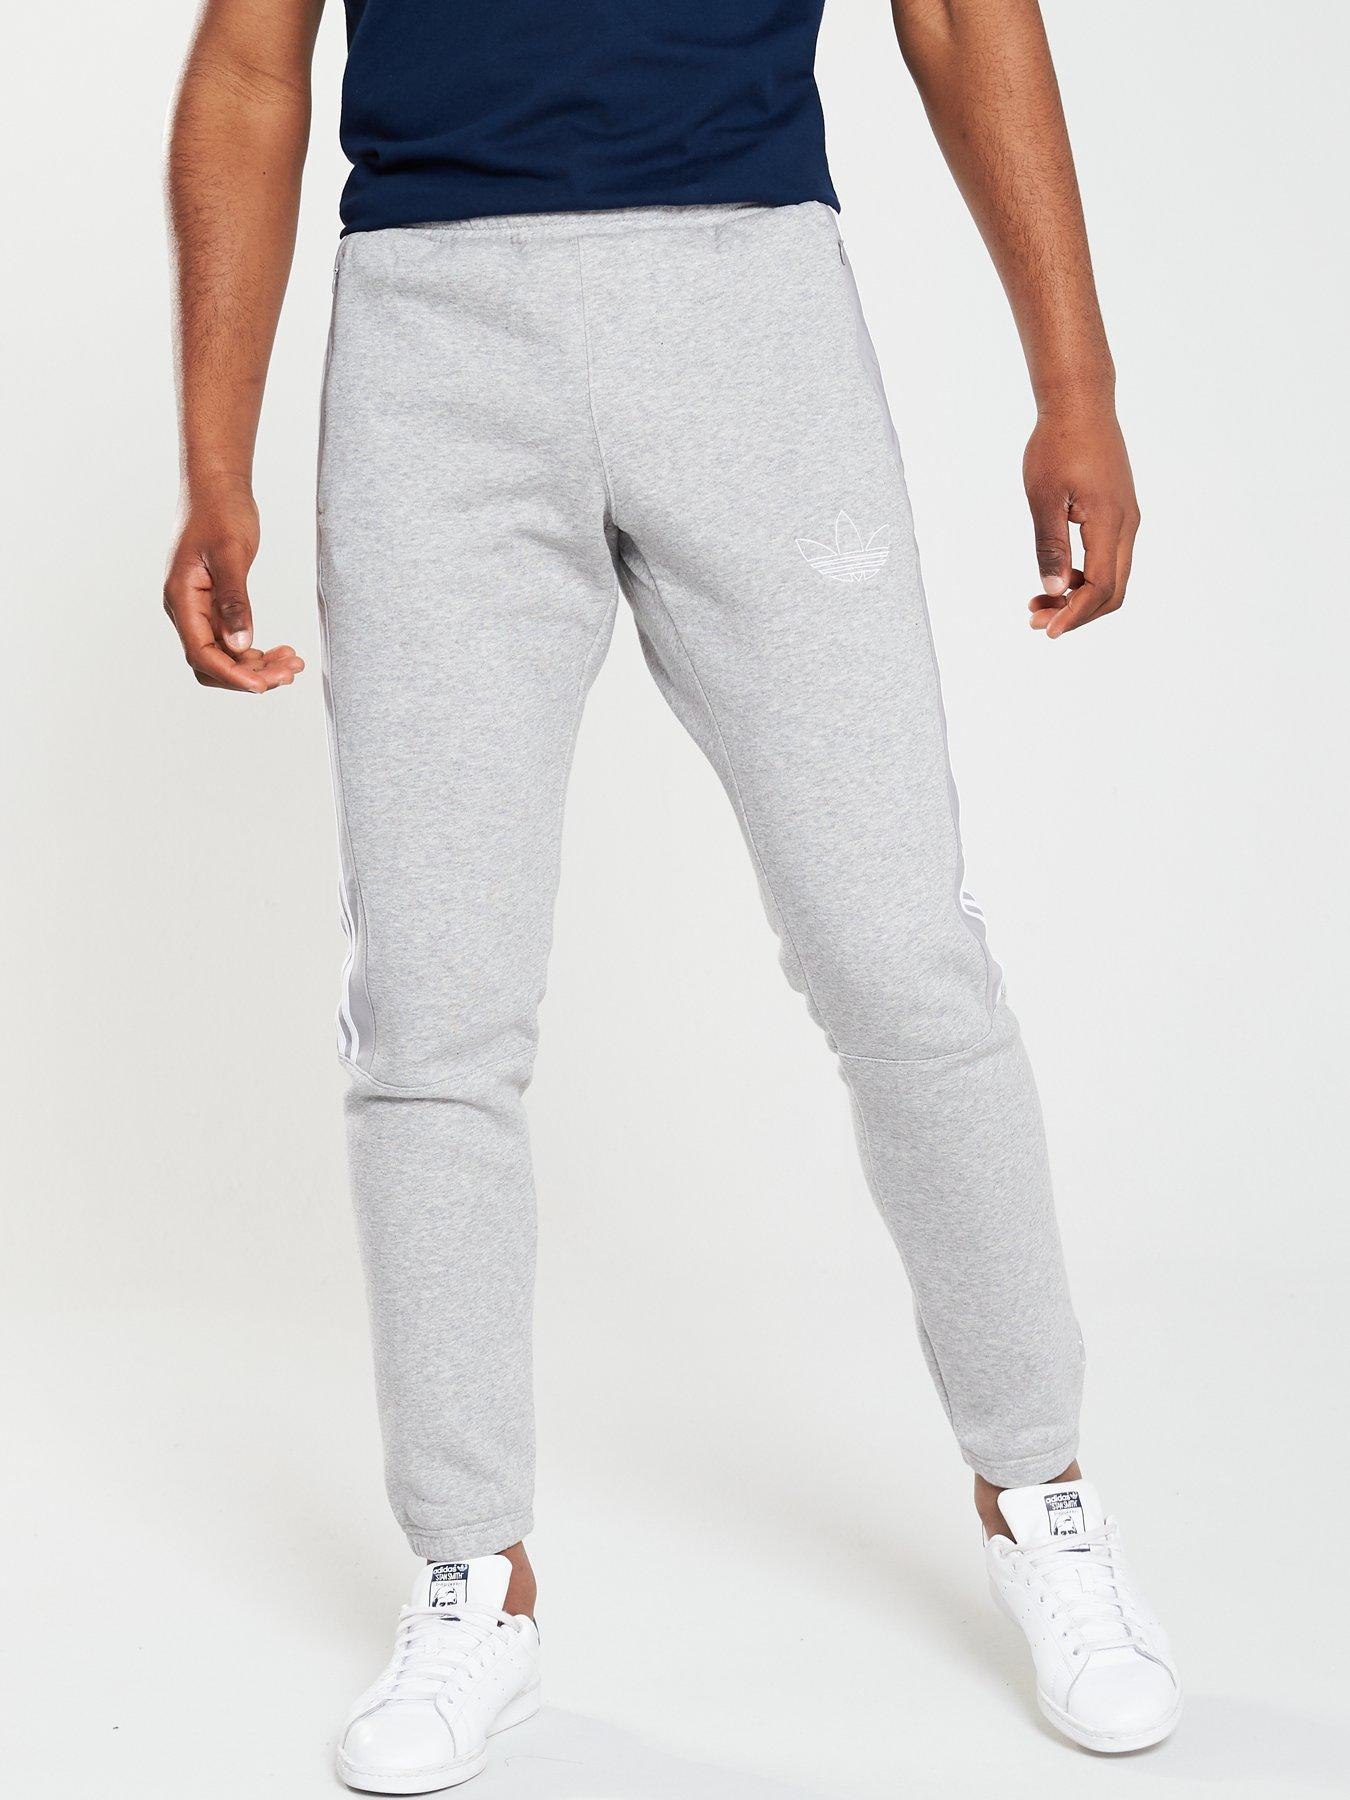 Adidas originals | Joggers | Men | very.co.uk